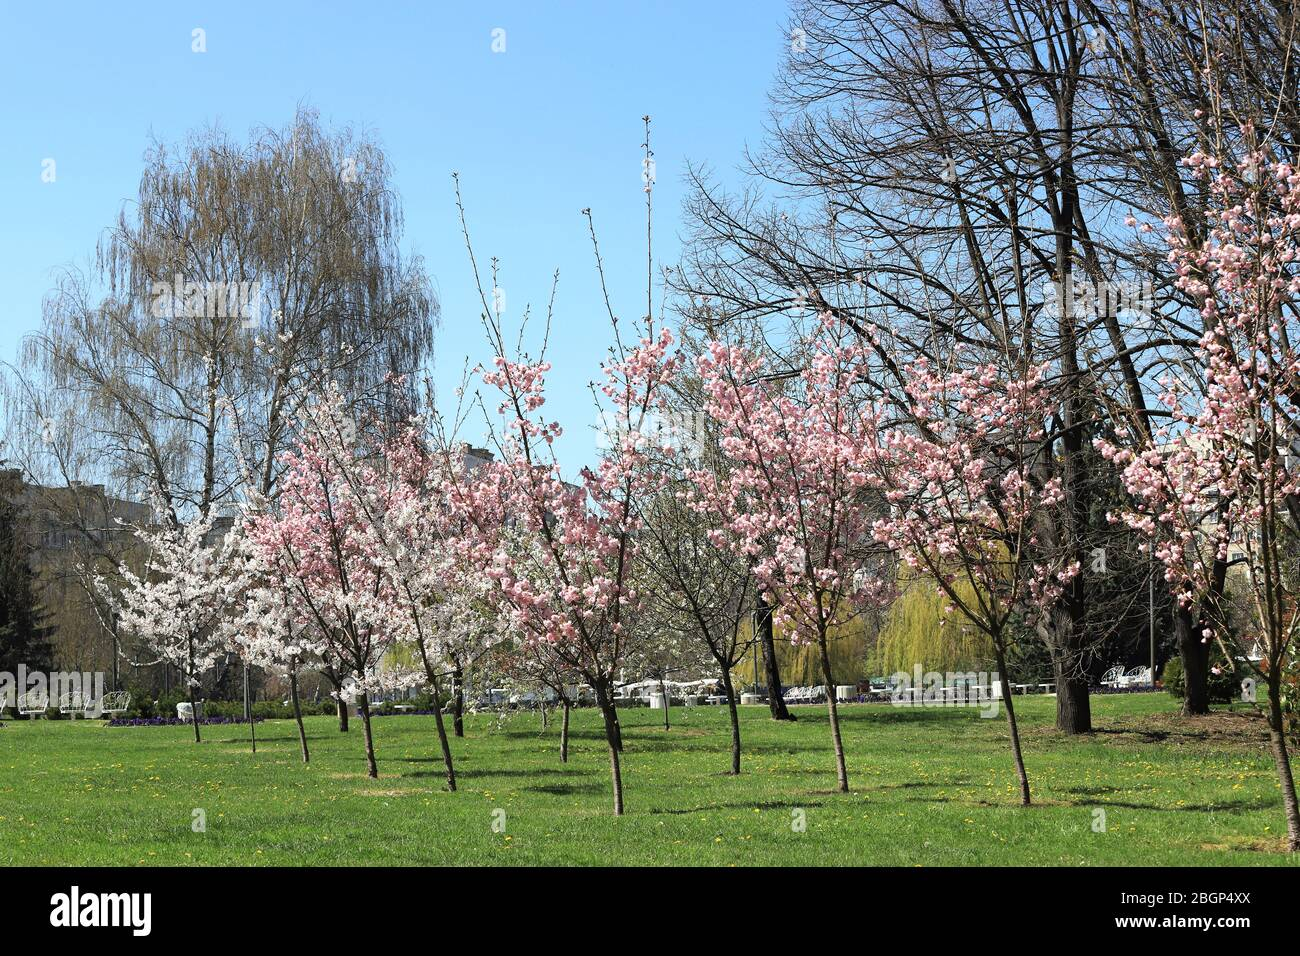 Japanese Pink Cherry Tree And White Orchard Tree In The Park